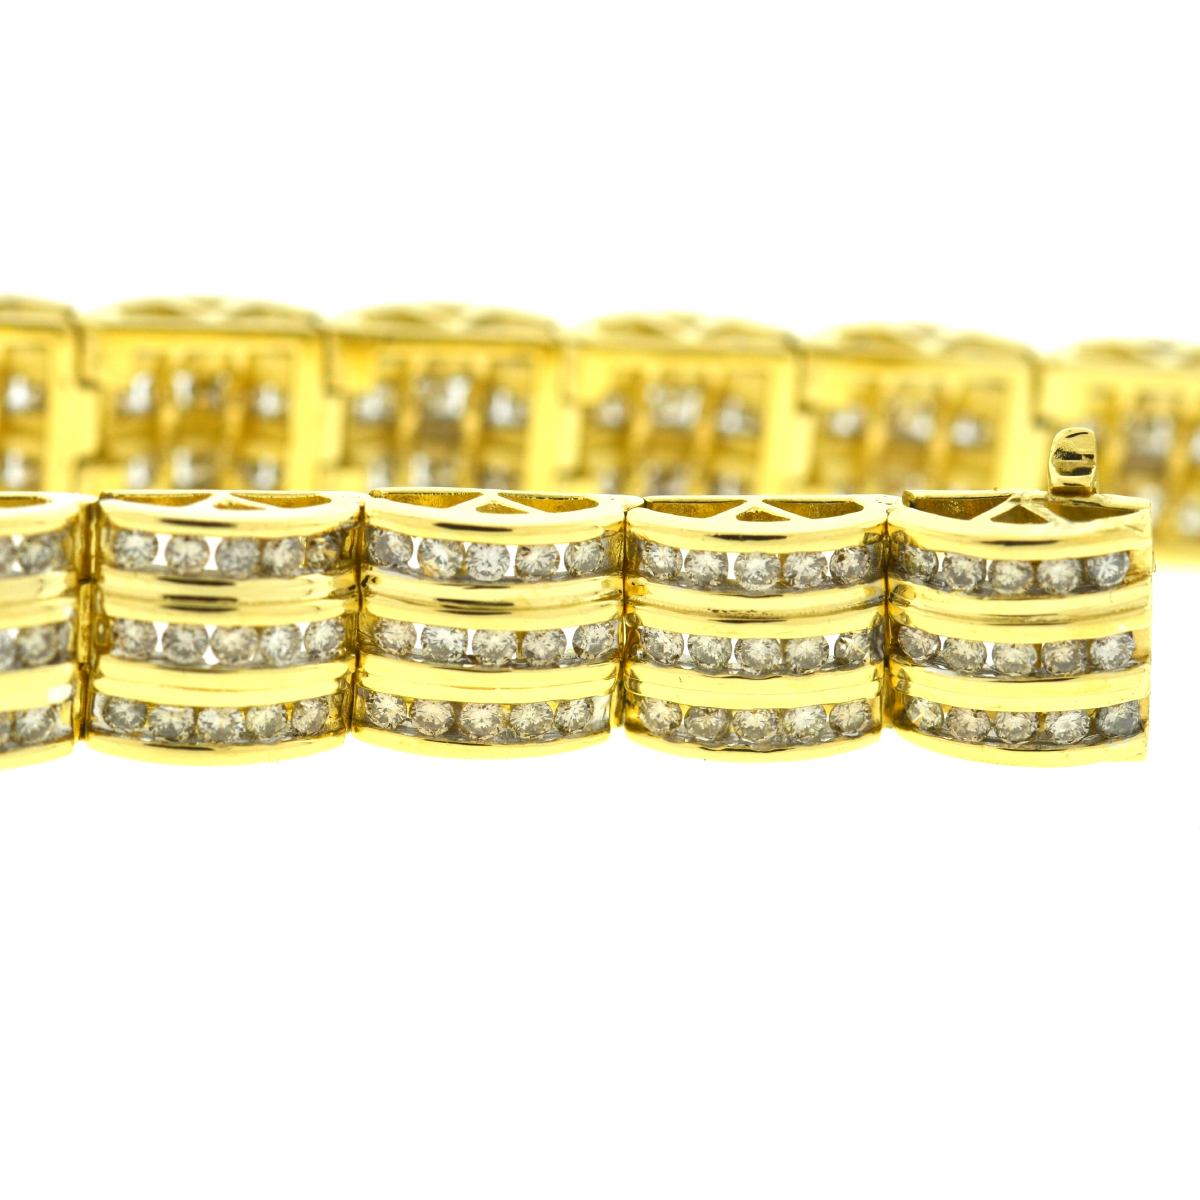 14k Yellow Gold 3 Row Diamond Bracelet Approx. 3.00 cts